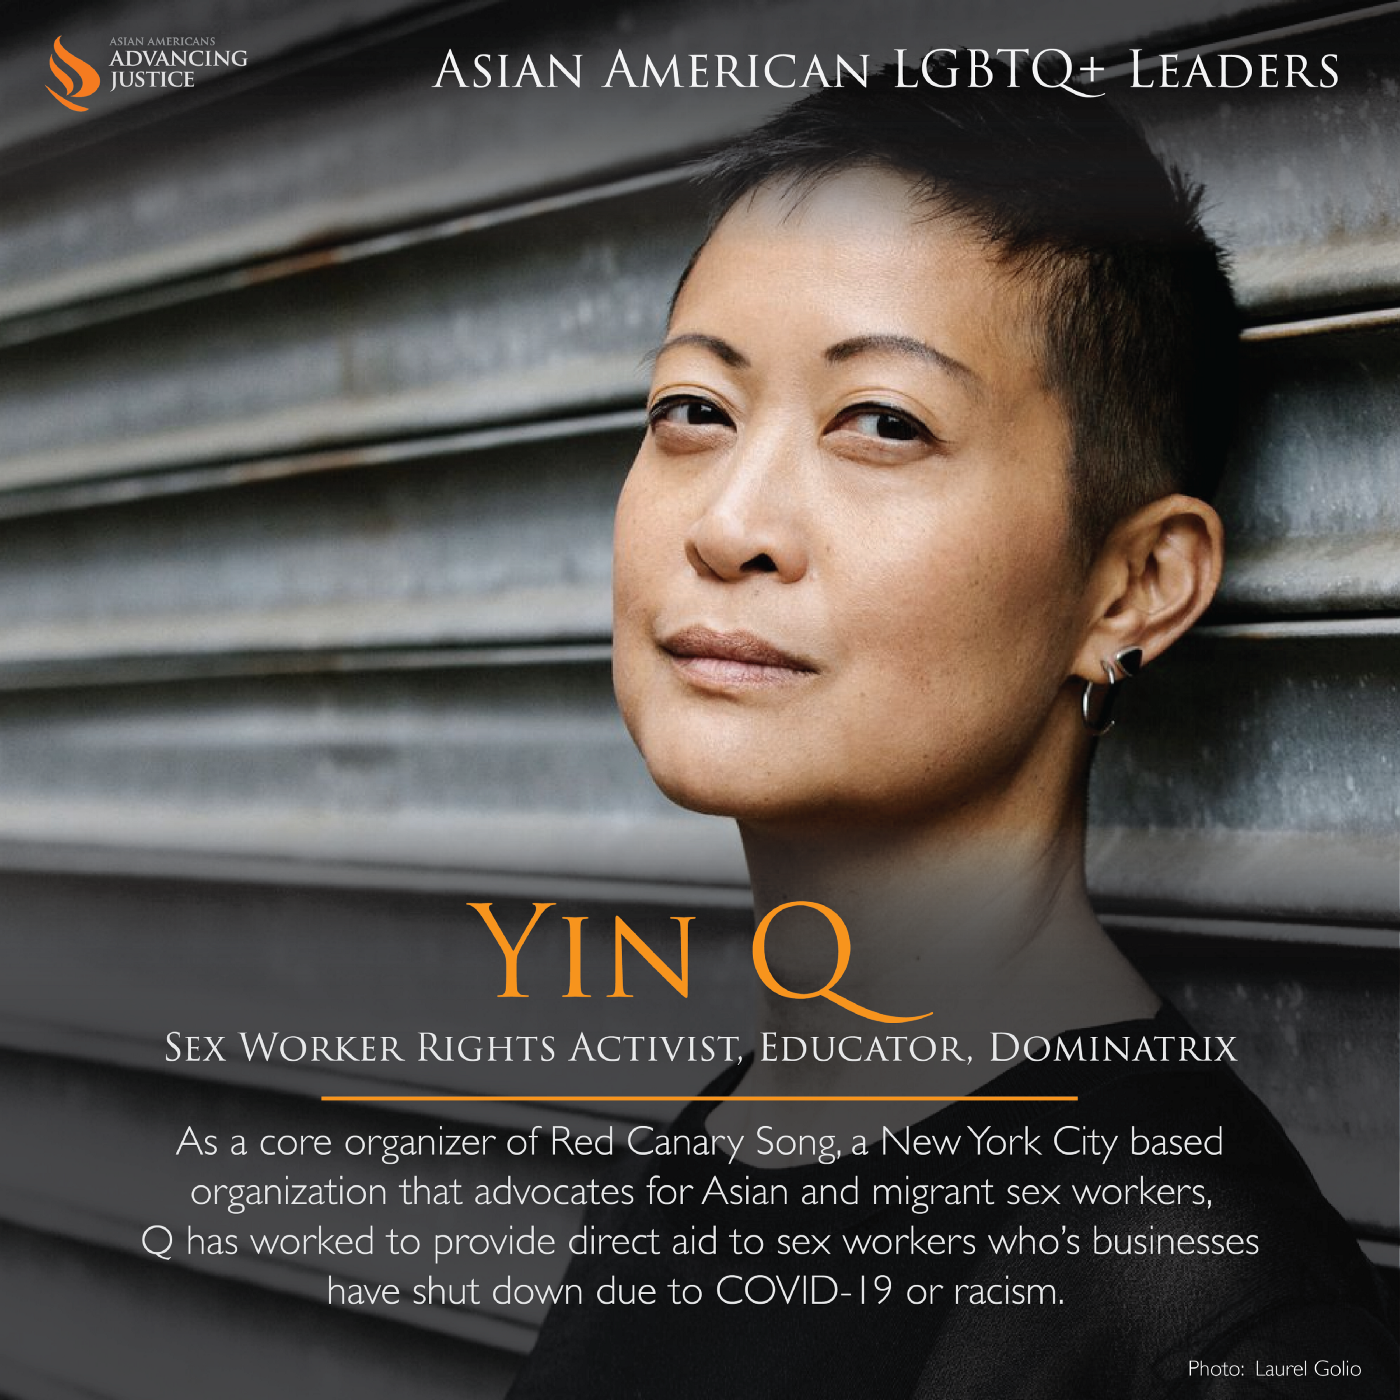 Yin Q, with closely shaved hair and two earrings on one ear, leaning against a wall looking at the camera. The text reads: Yin Q, Sex Worker Rights activist, Educator, Dominatrix. As a core organizer of Red Canary Song, a New York City based organization that advocates for Asian and migrant sex workers, Q has worked to provide direct aid to sex workers who's businesses have shut down due to COVID-19 or racism.